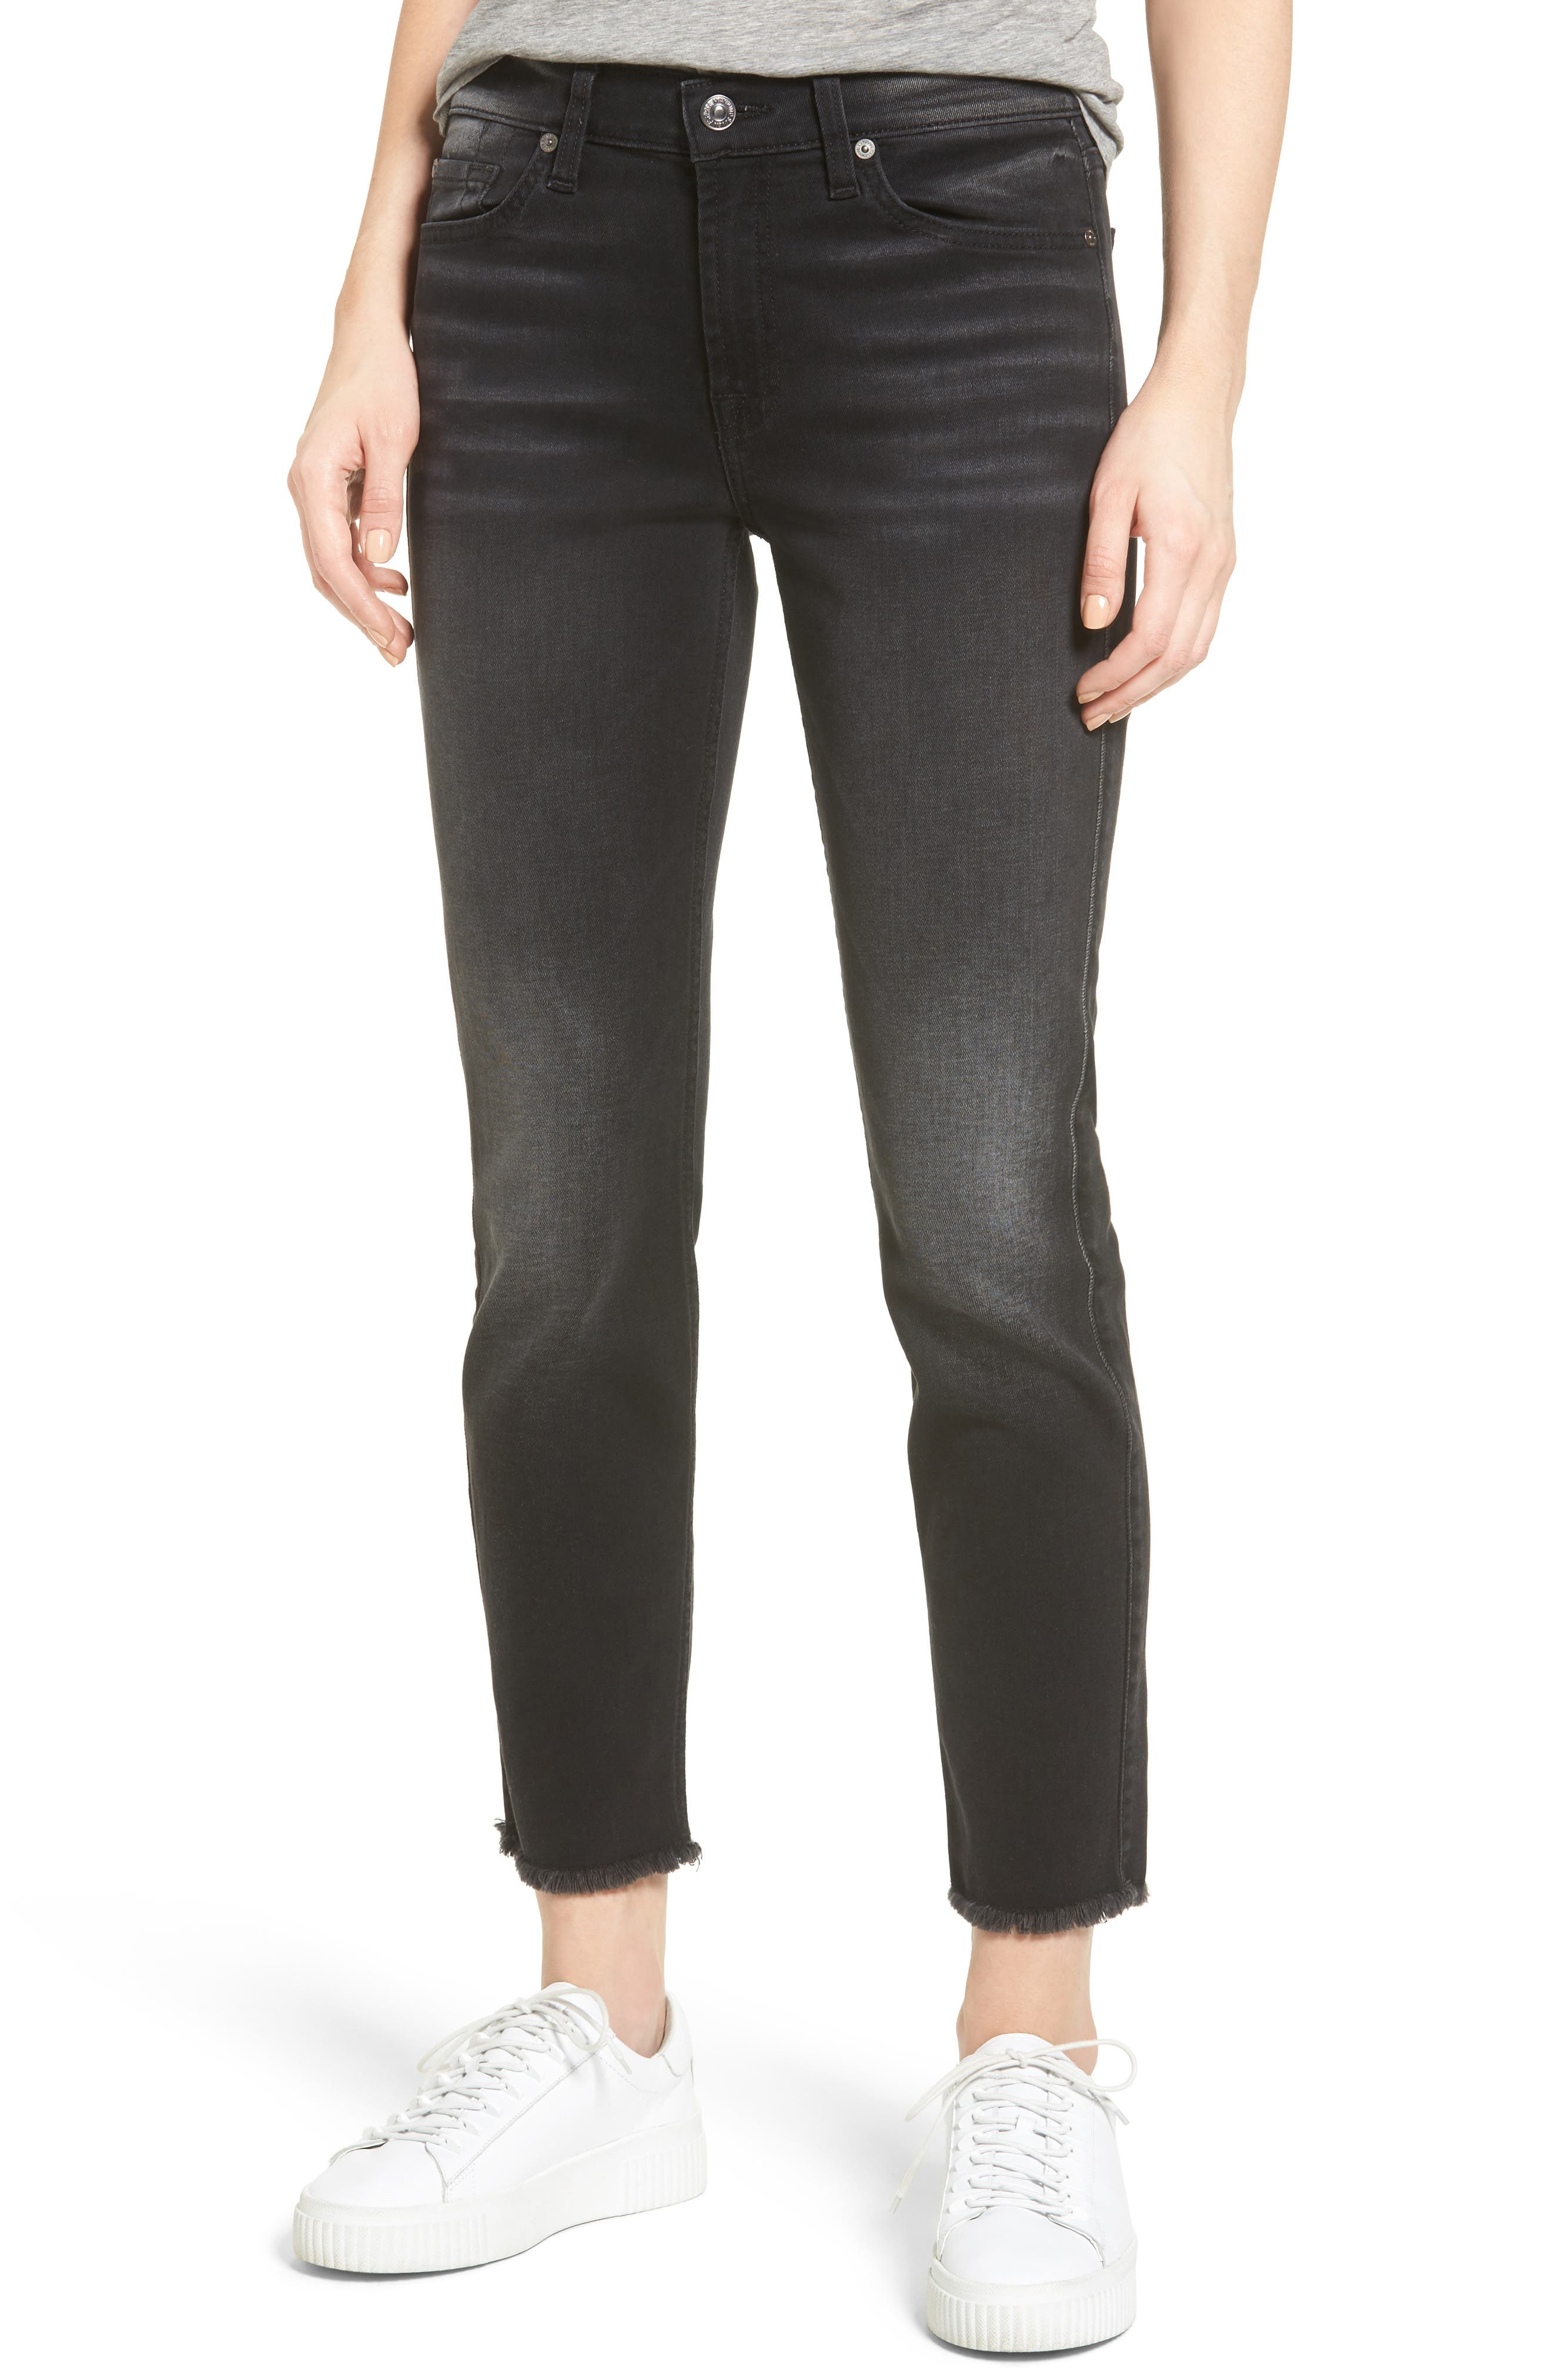 Main Image - Seven7 Roxanne Raw Hem Ankle Jeans (Aged Onyx)